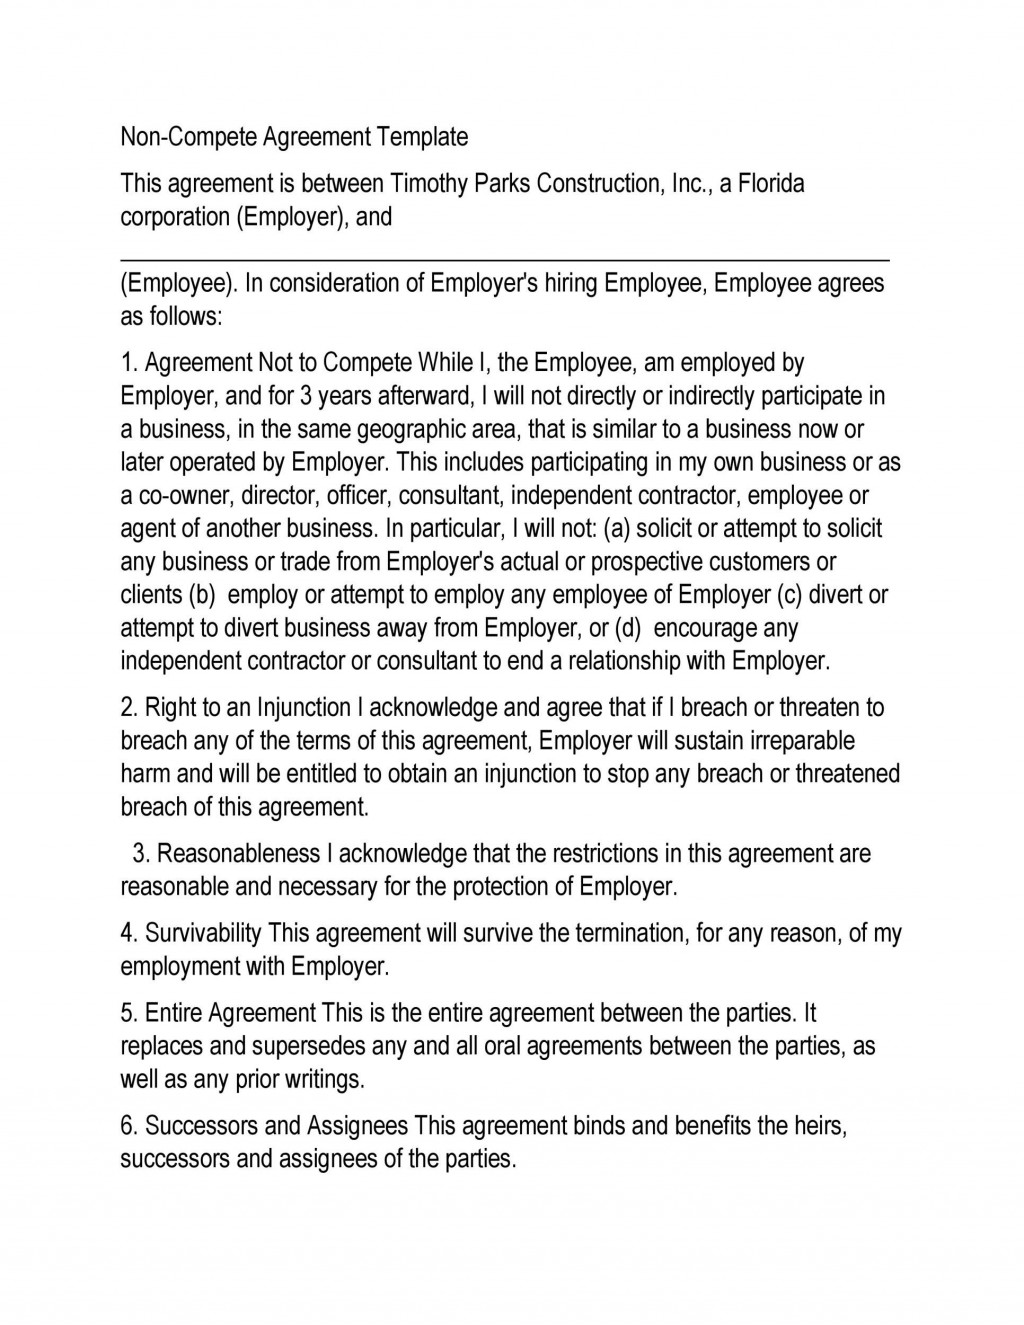 005 Excellent Non Compete Agreement Template Uk High Def Large